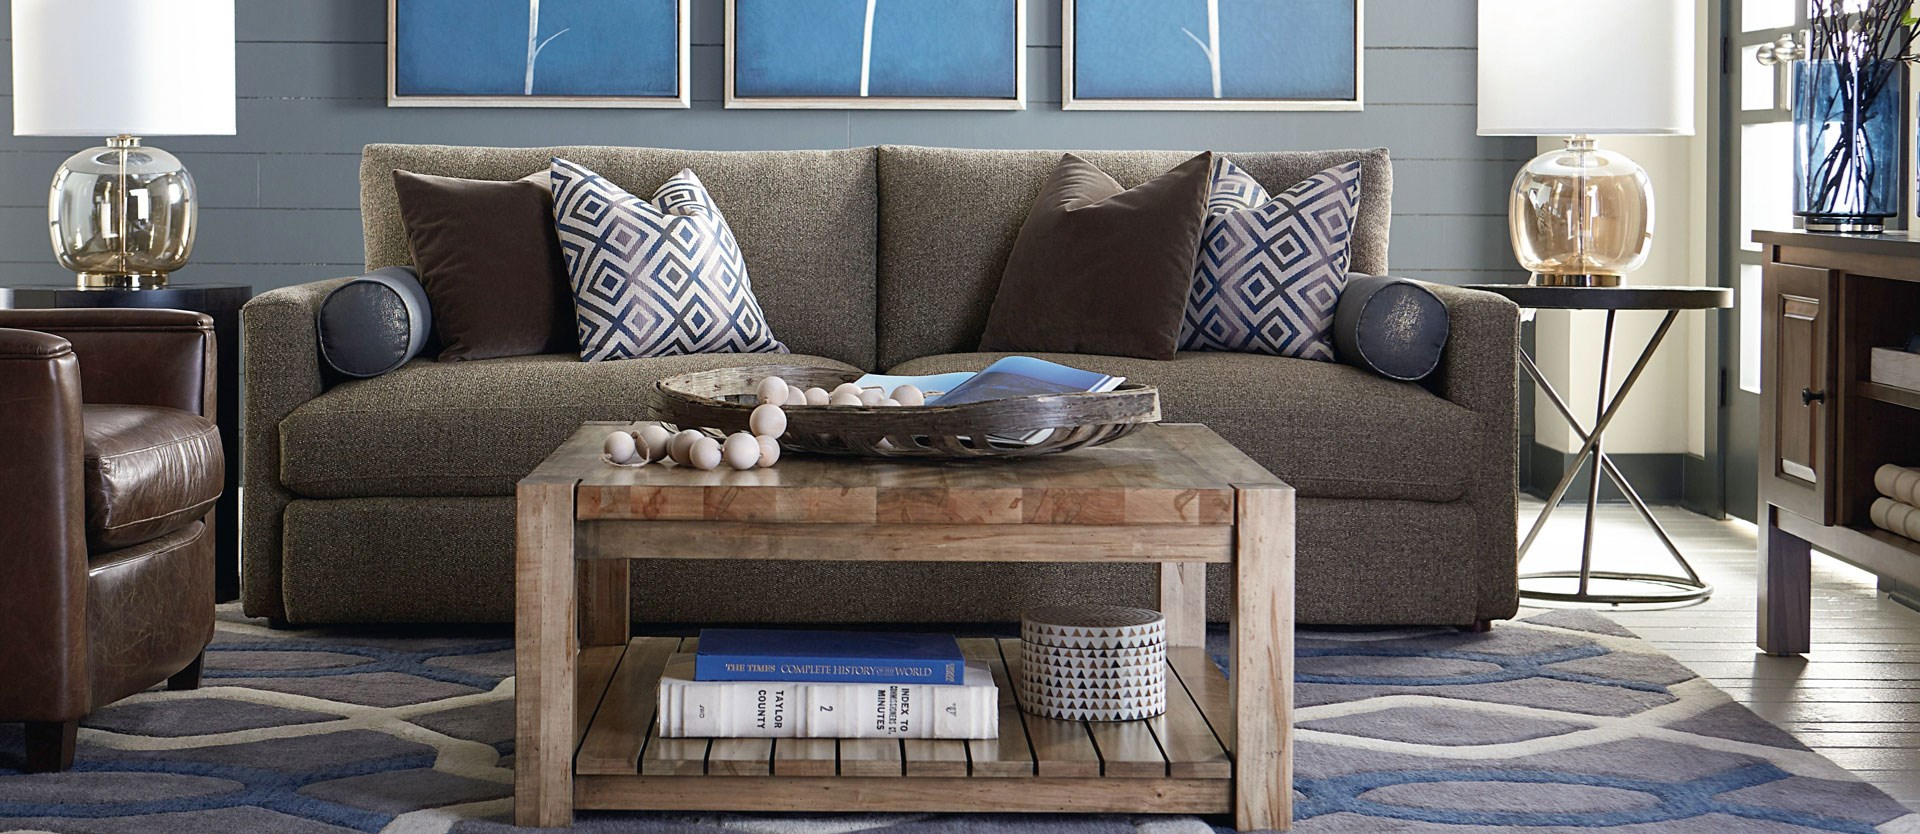 Find a great selection of living room furniture at Virginia Furniutre Market!